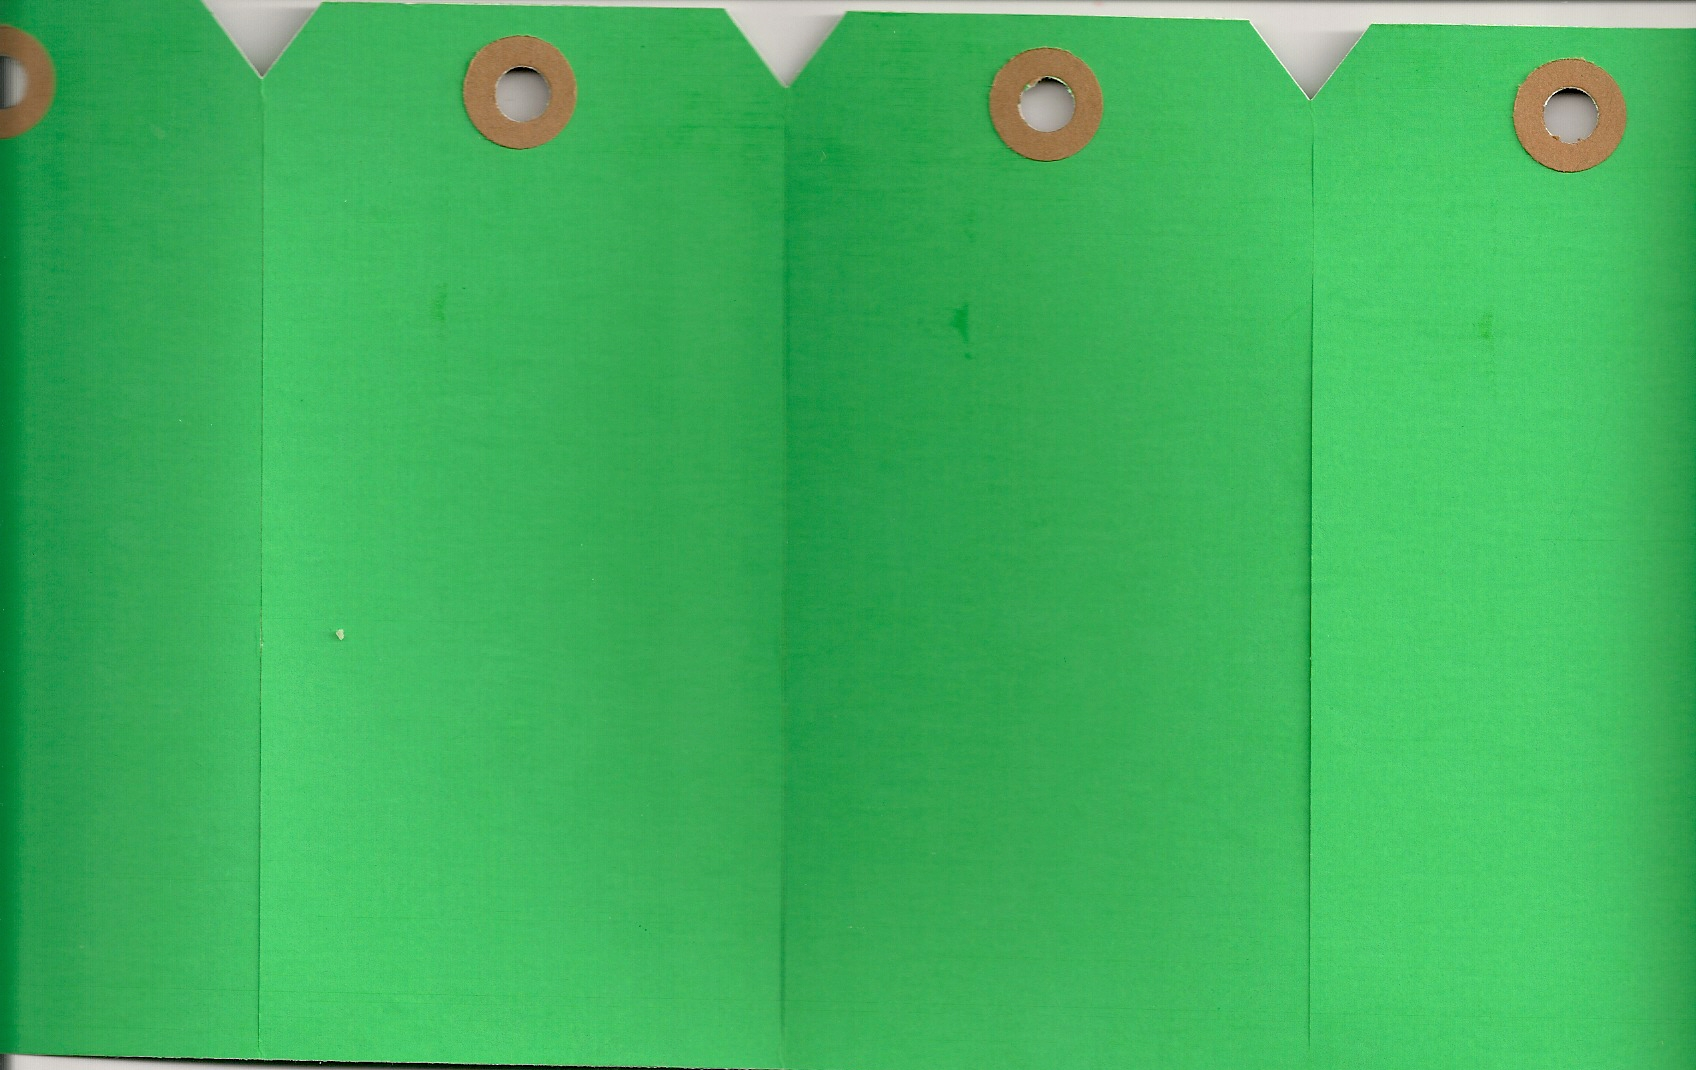 #8 13 POINT GREEN GANGS OF 4 TAGS (125 SHEETS)